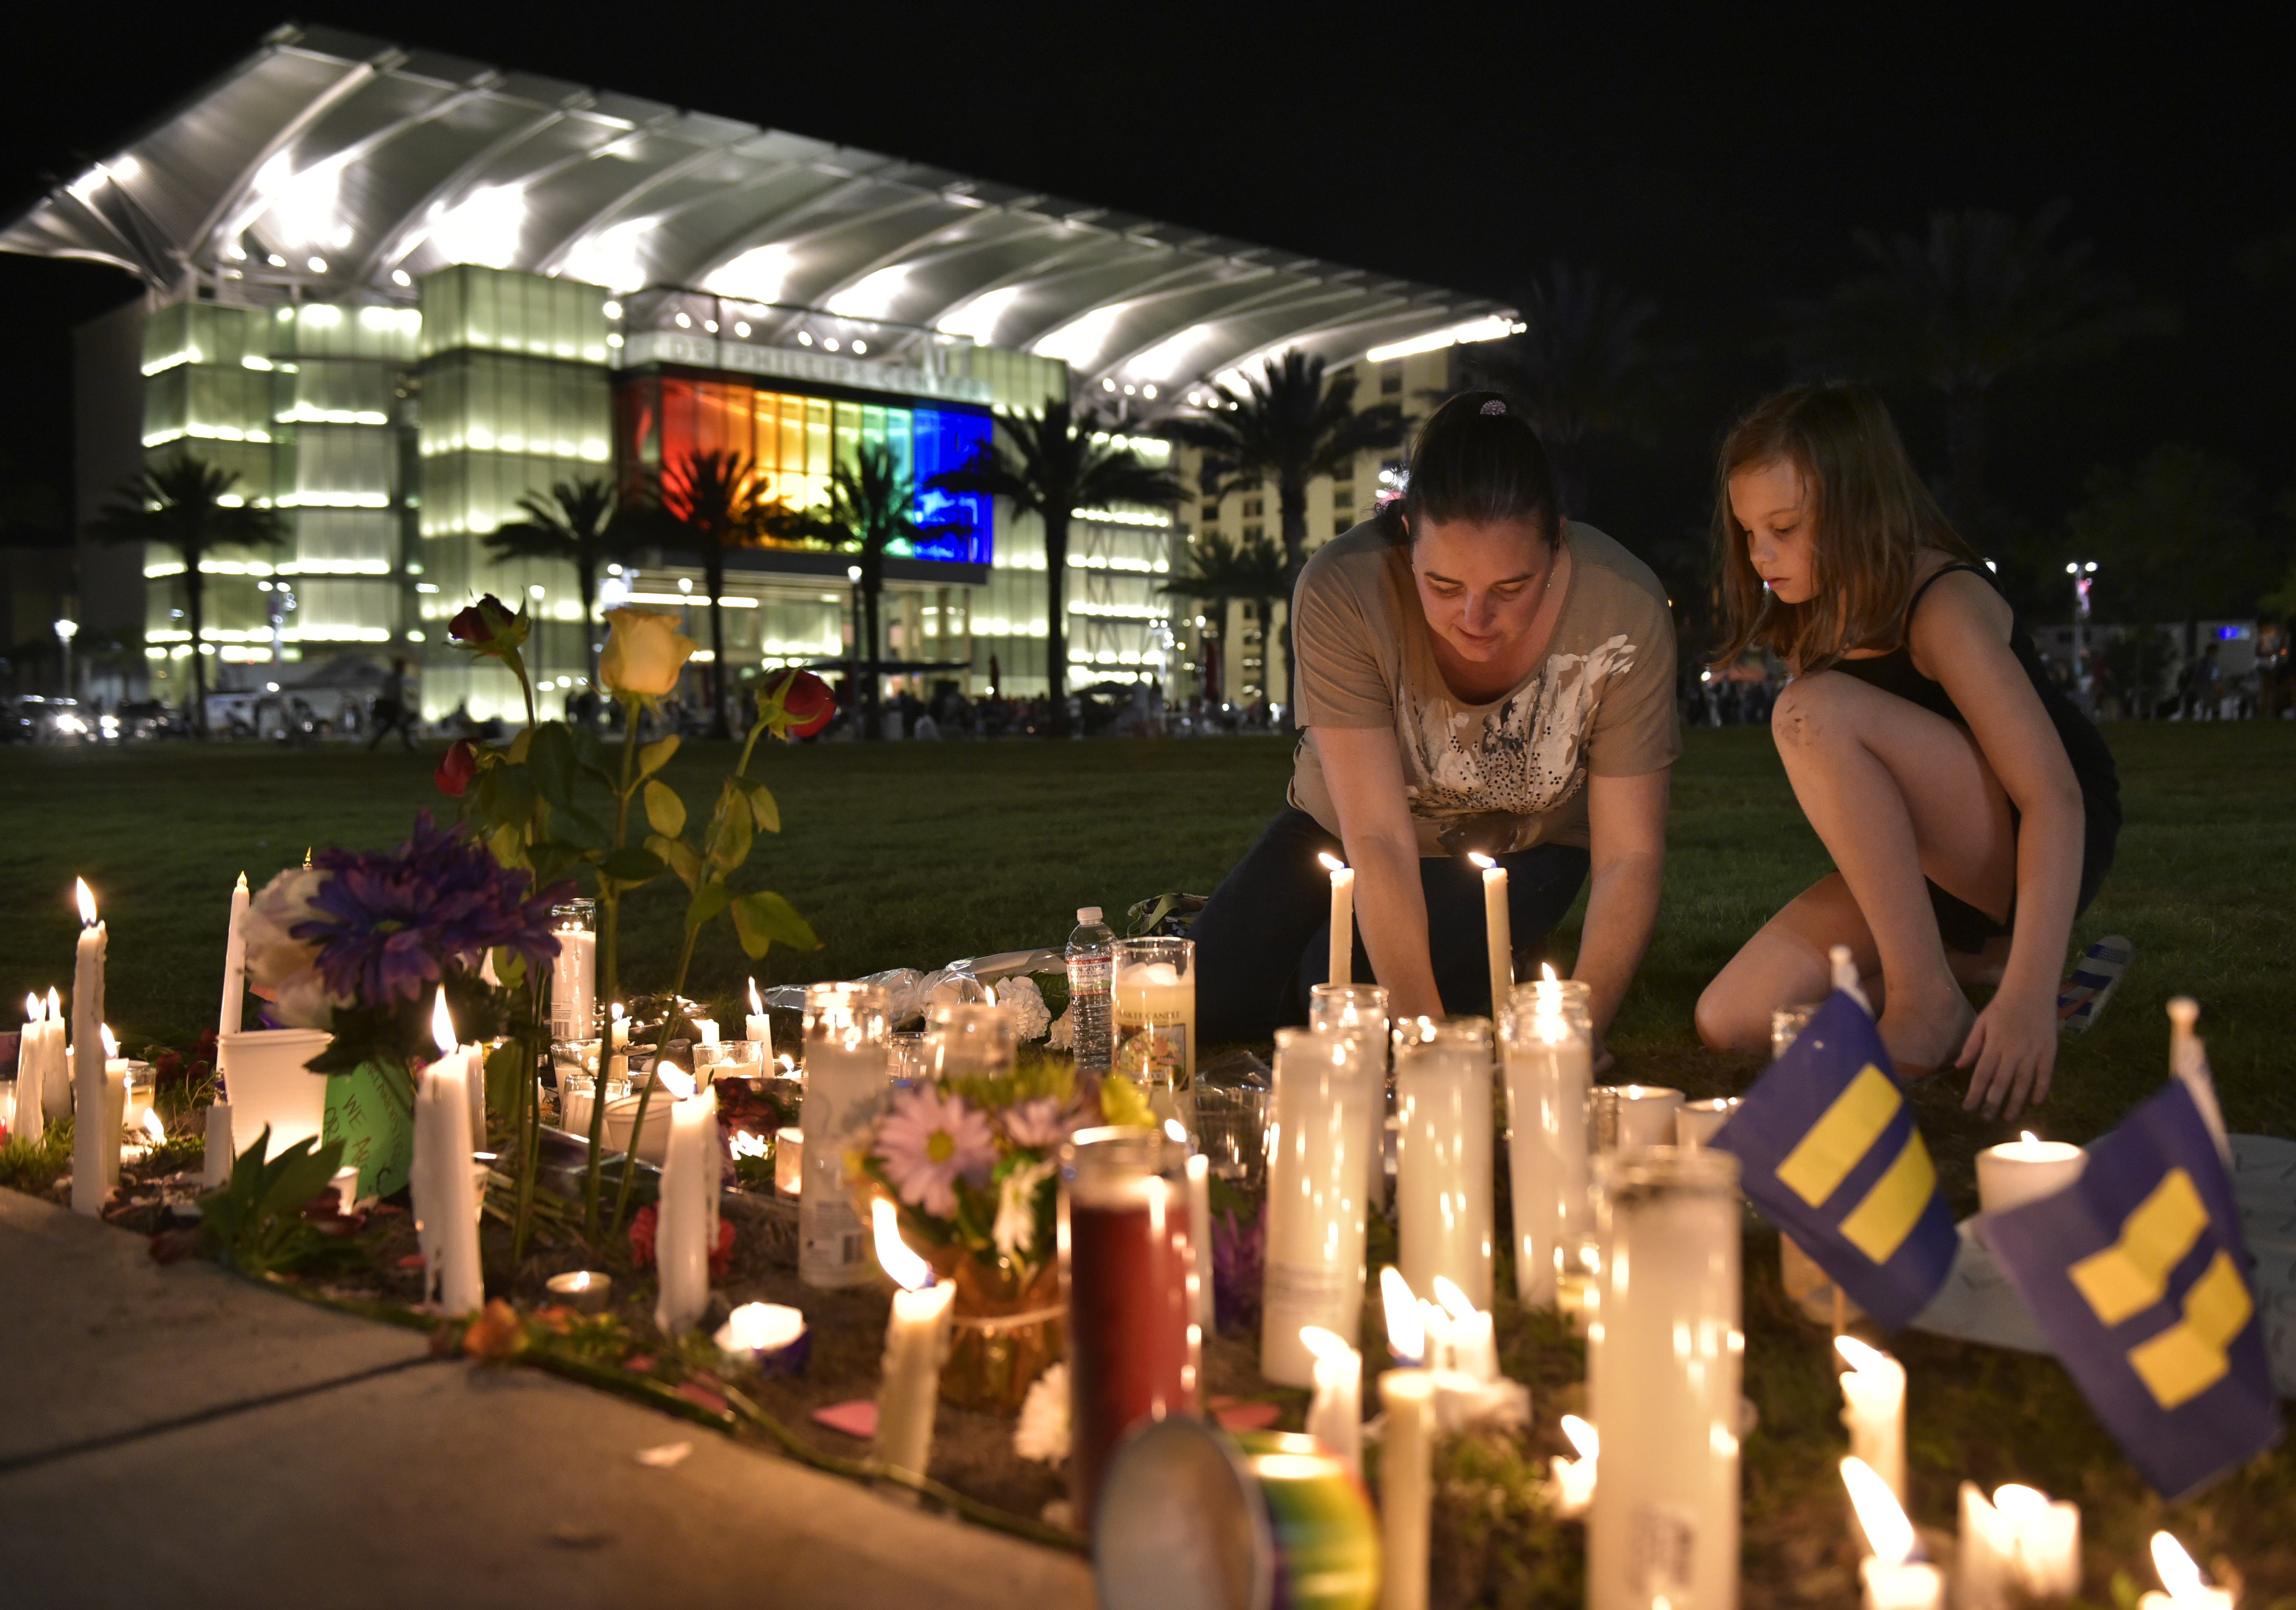 A woman and child arrange candles for the victims of the Pulse nightclub shooting, following a vigil on June 13, 2016 at the Dr. Phillips Center for the Performing Arts in Orlando, Florida.